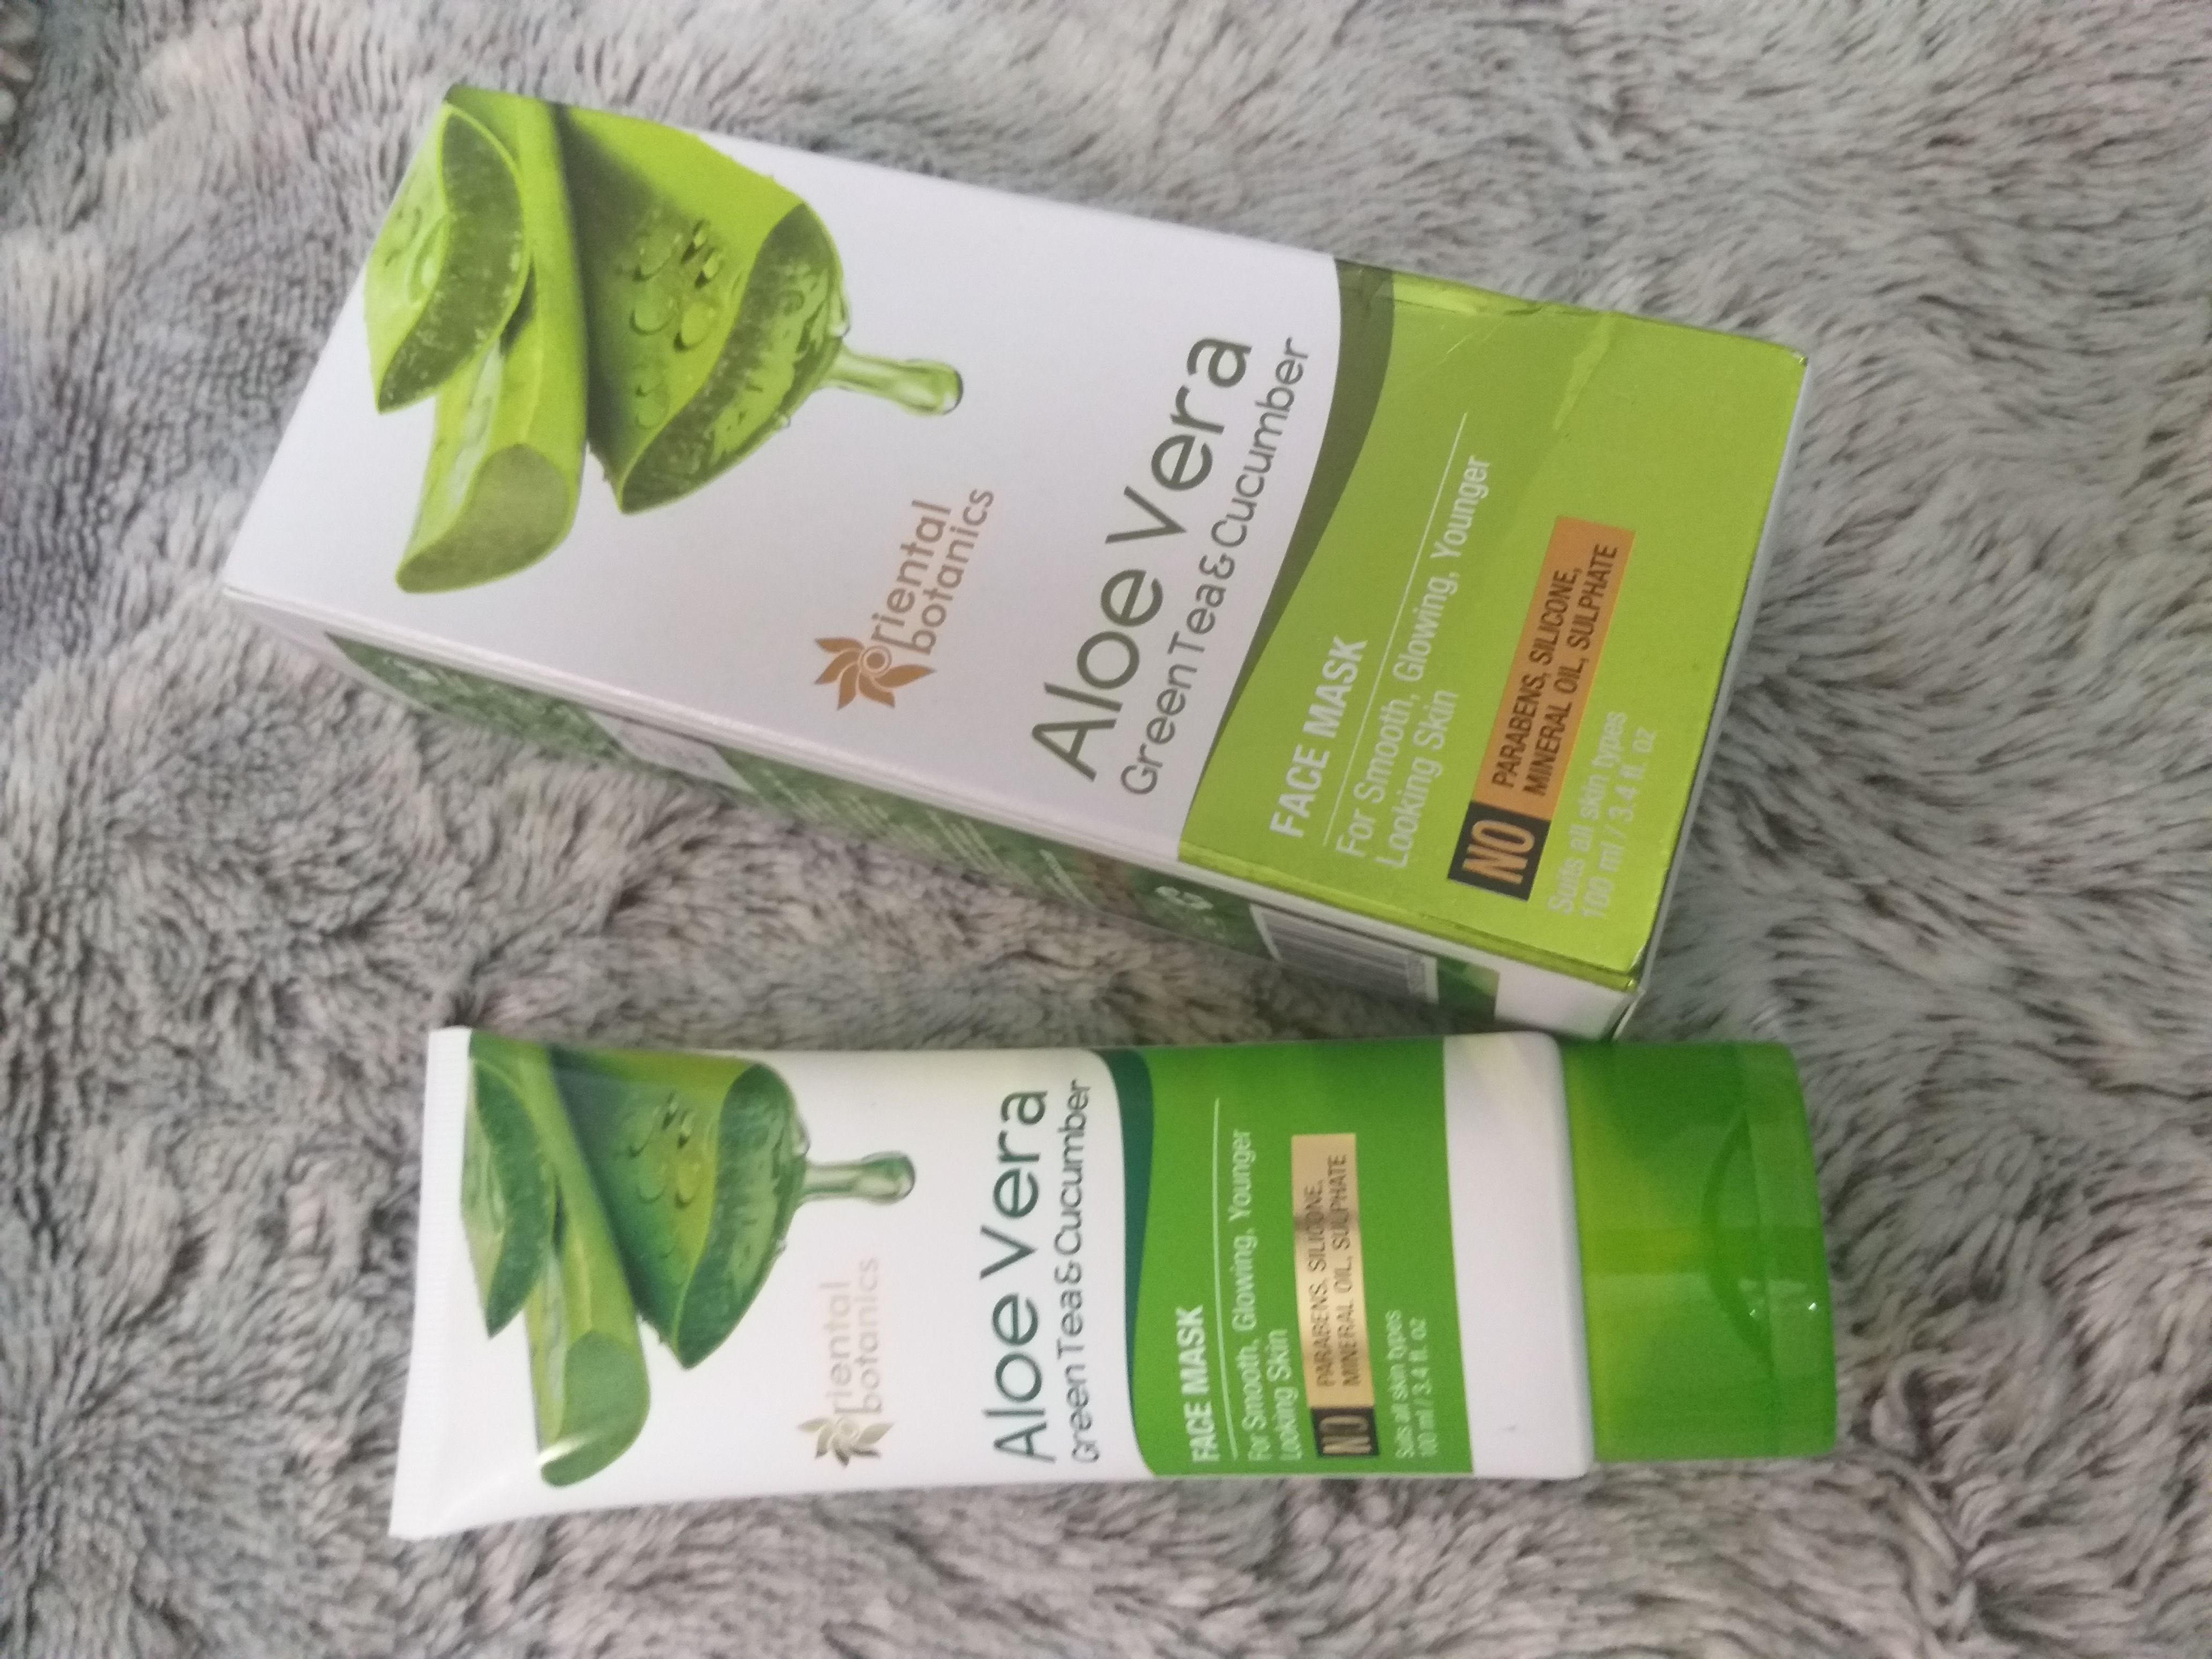 Oriental Botanics Aloe Vera, Green Tea & Cucumber Face Mask-For fresher and glowing looking skin-By beauty_mommies-2